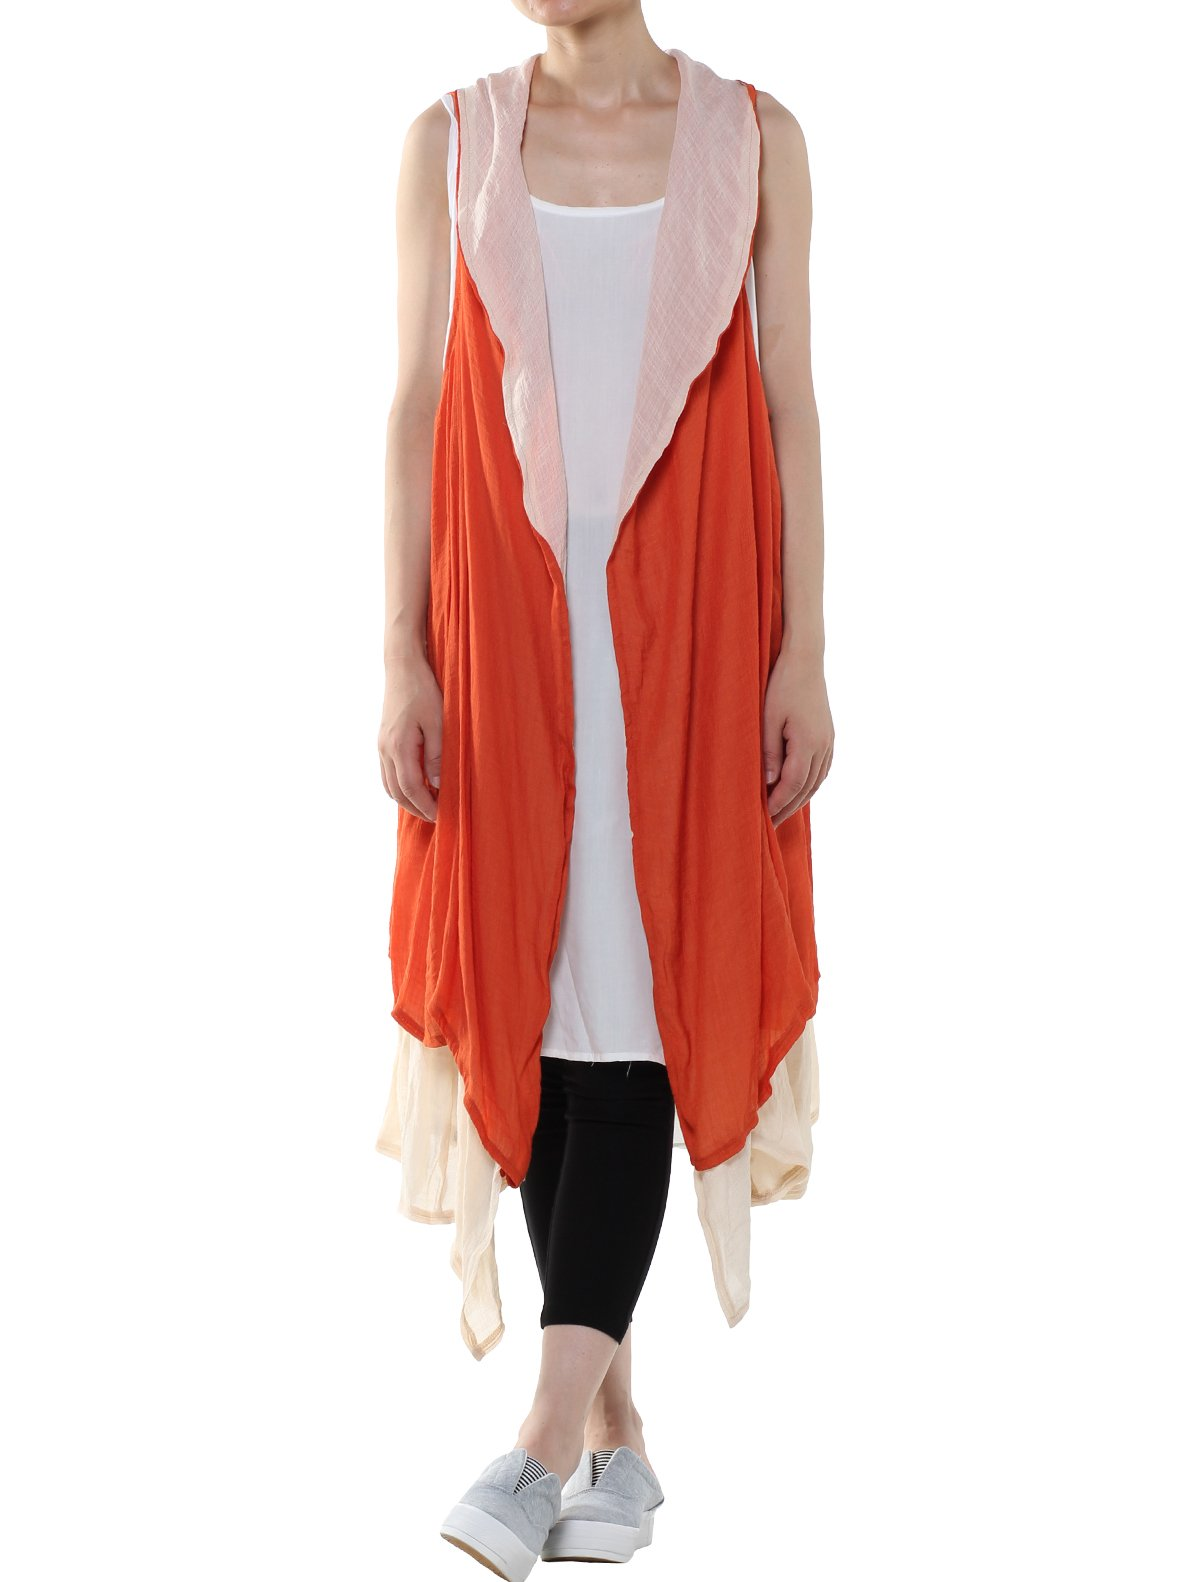 Mordenmiss Women's Long Vest Jacket Casual Sleeveless Duster Cardigan Style 2-Orange by Mordenmiss